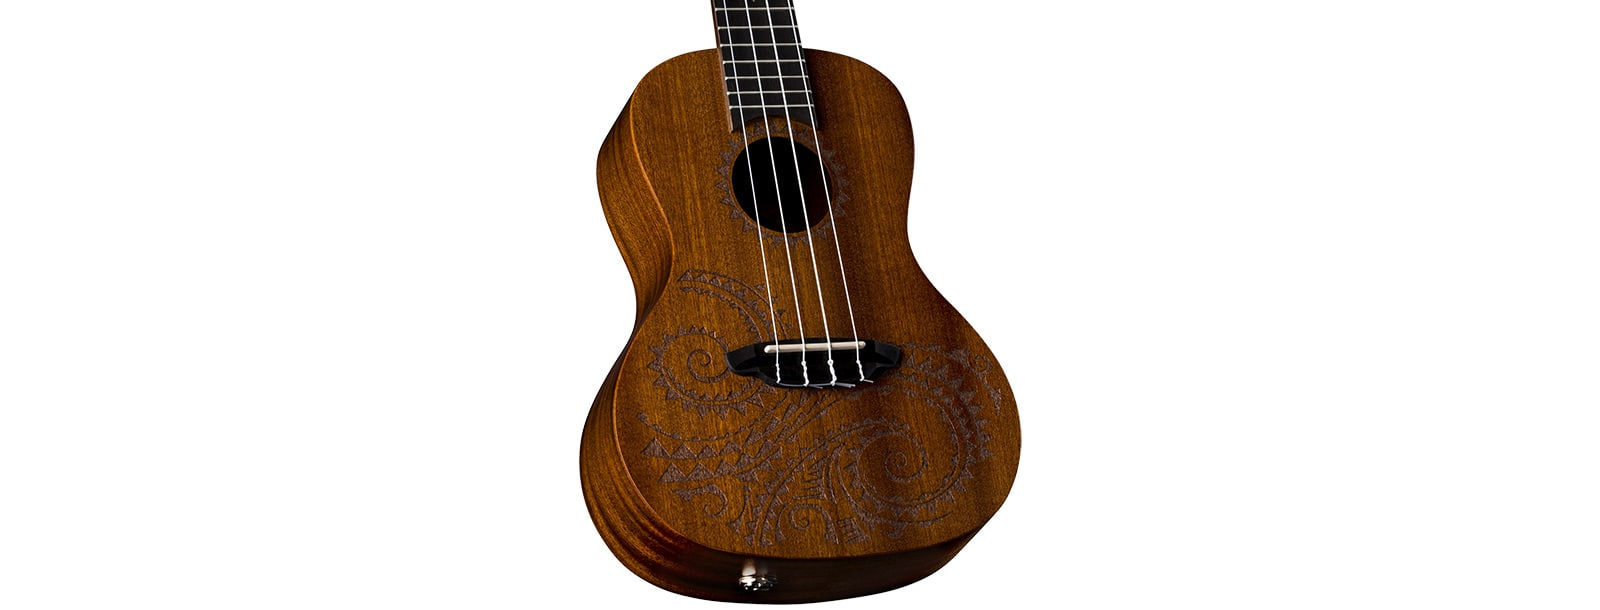 LUNA Uke Tattoo Concert w/Preamp Lefty